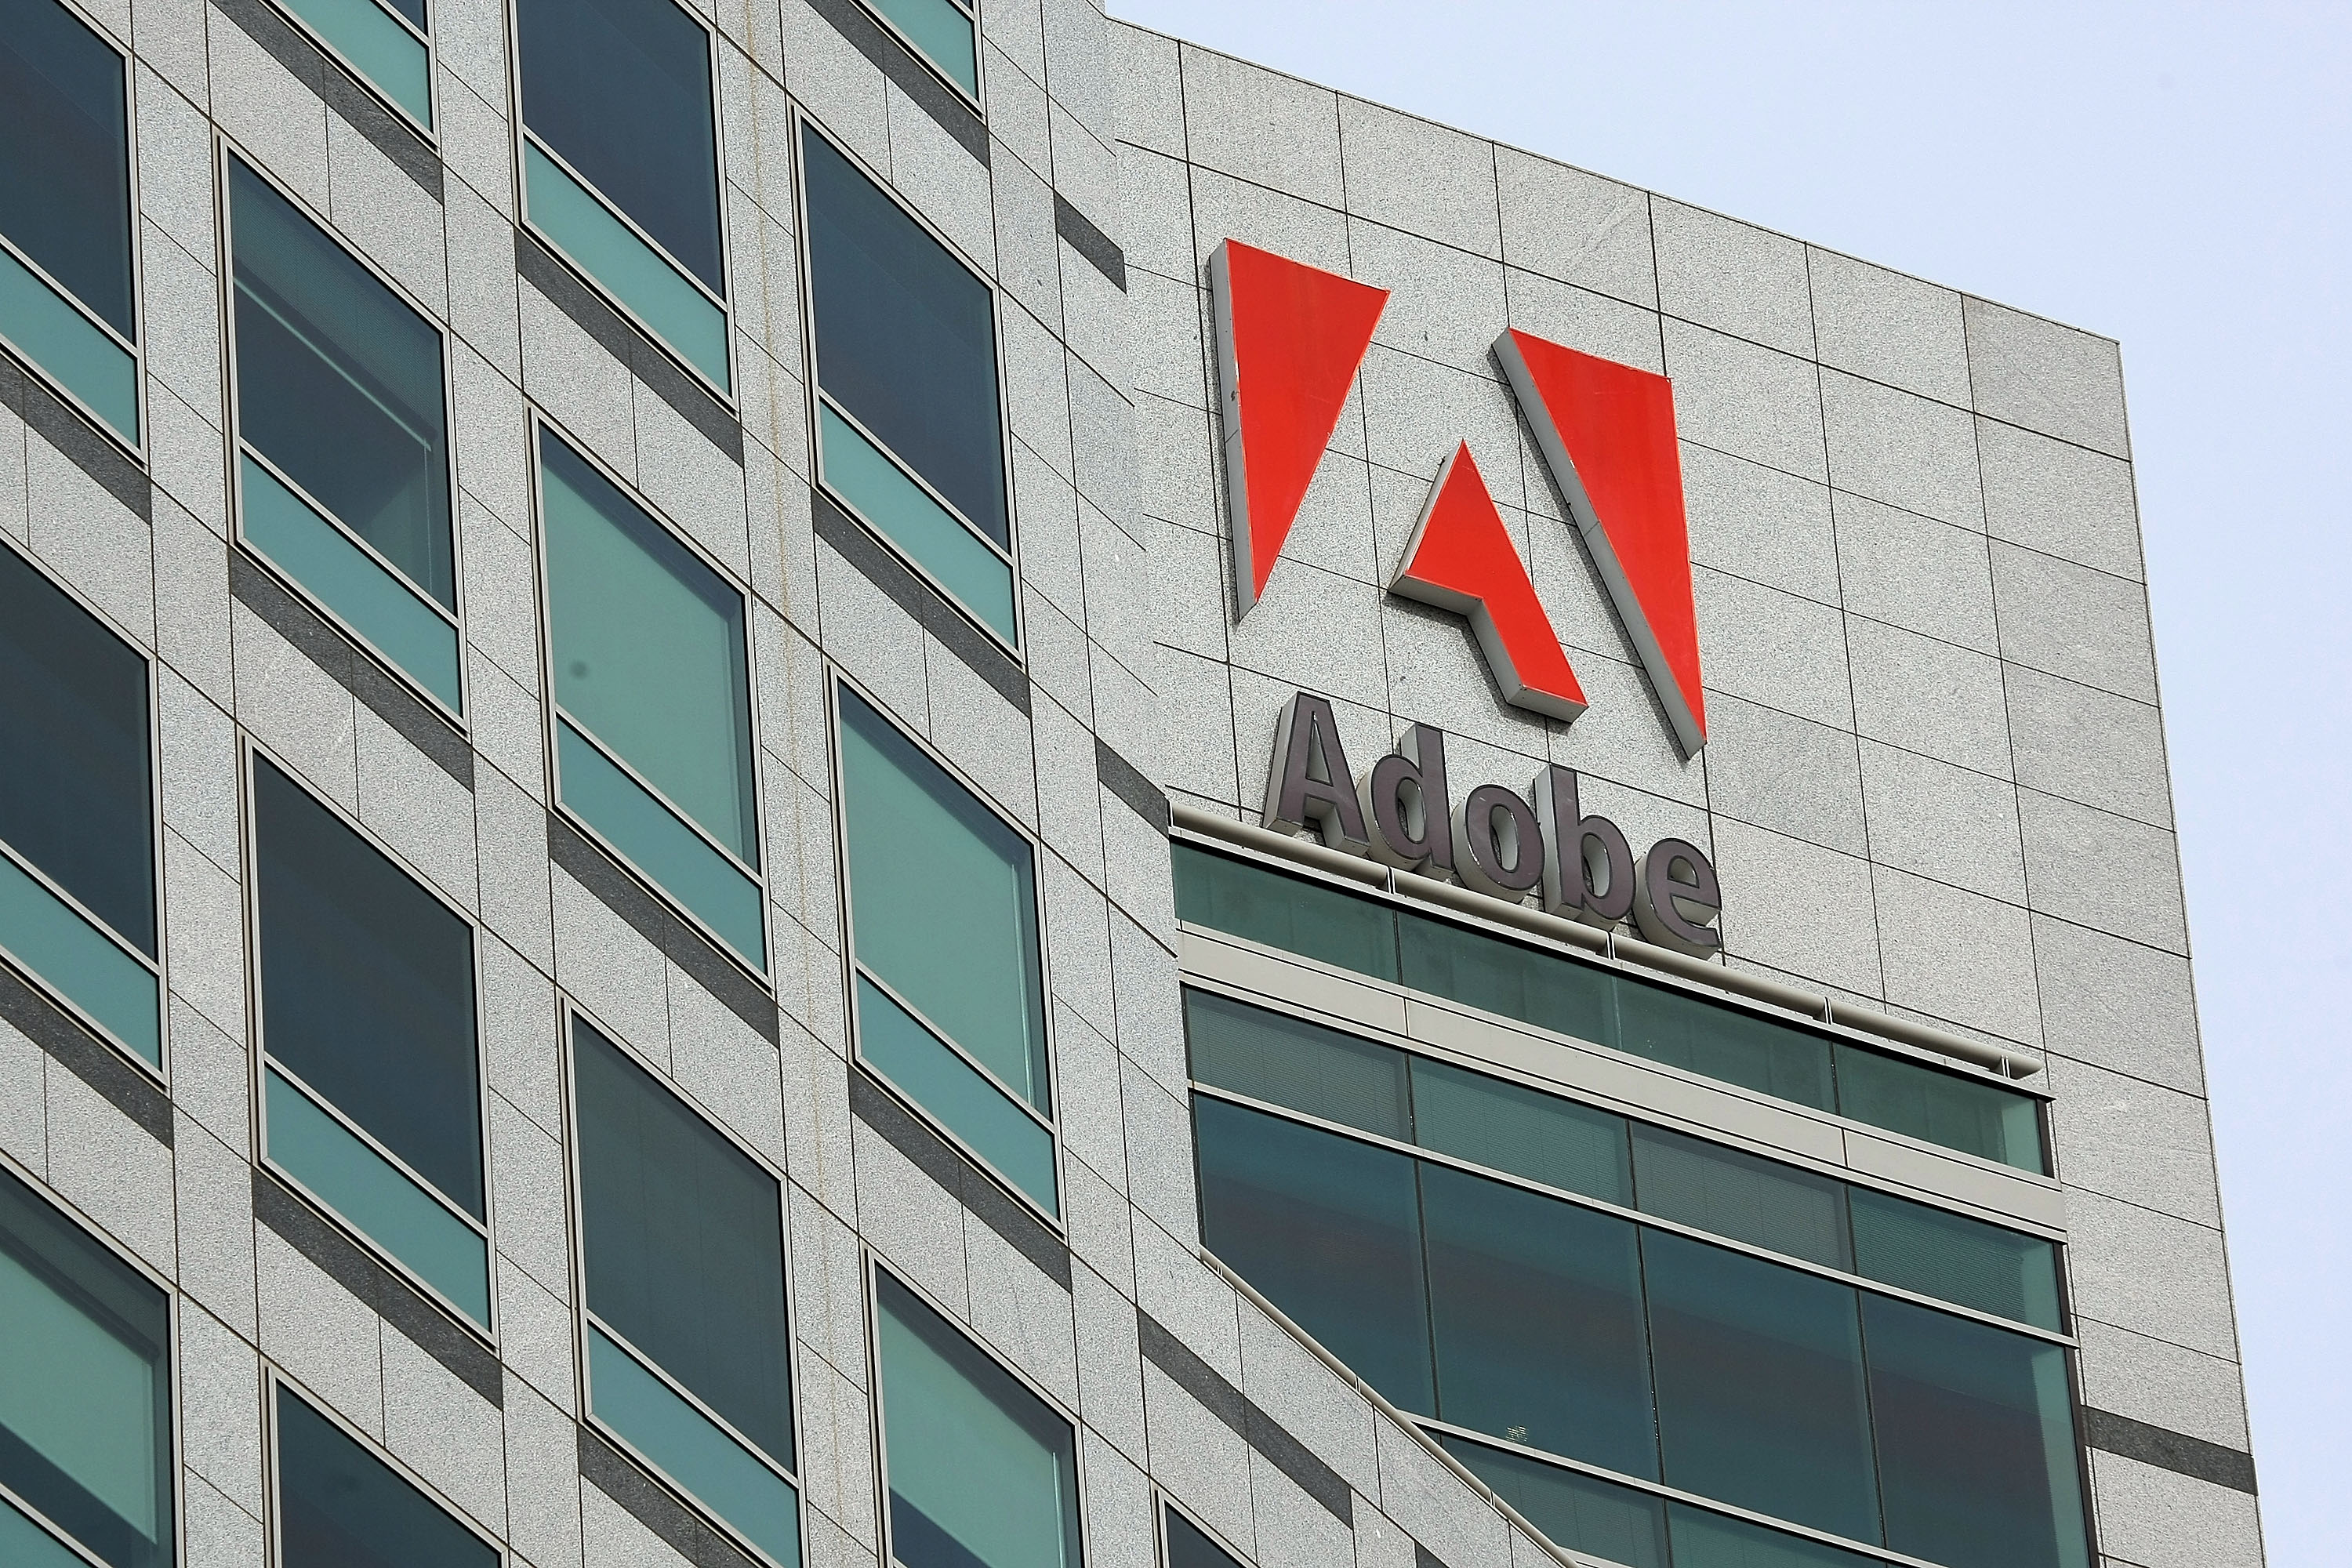 The Adobe logo is displayed on the side of the Adobe Systems headquarters January 15, 2010 in San Jose, California. Adobe Systems has added 20 new wind turbines to their rooftops in an attempt to harness wind energy to help power their offices.